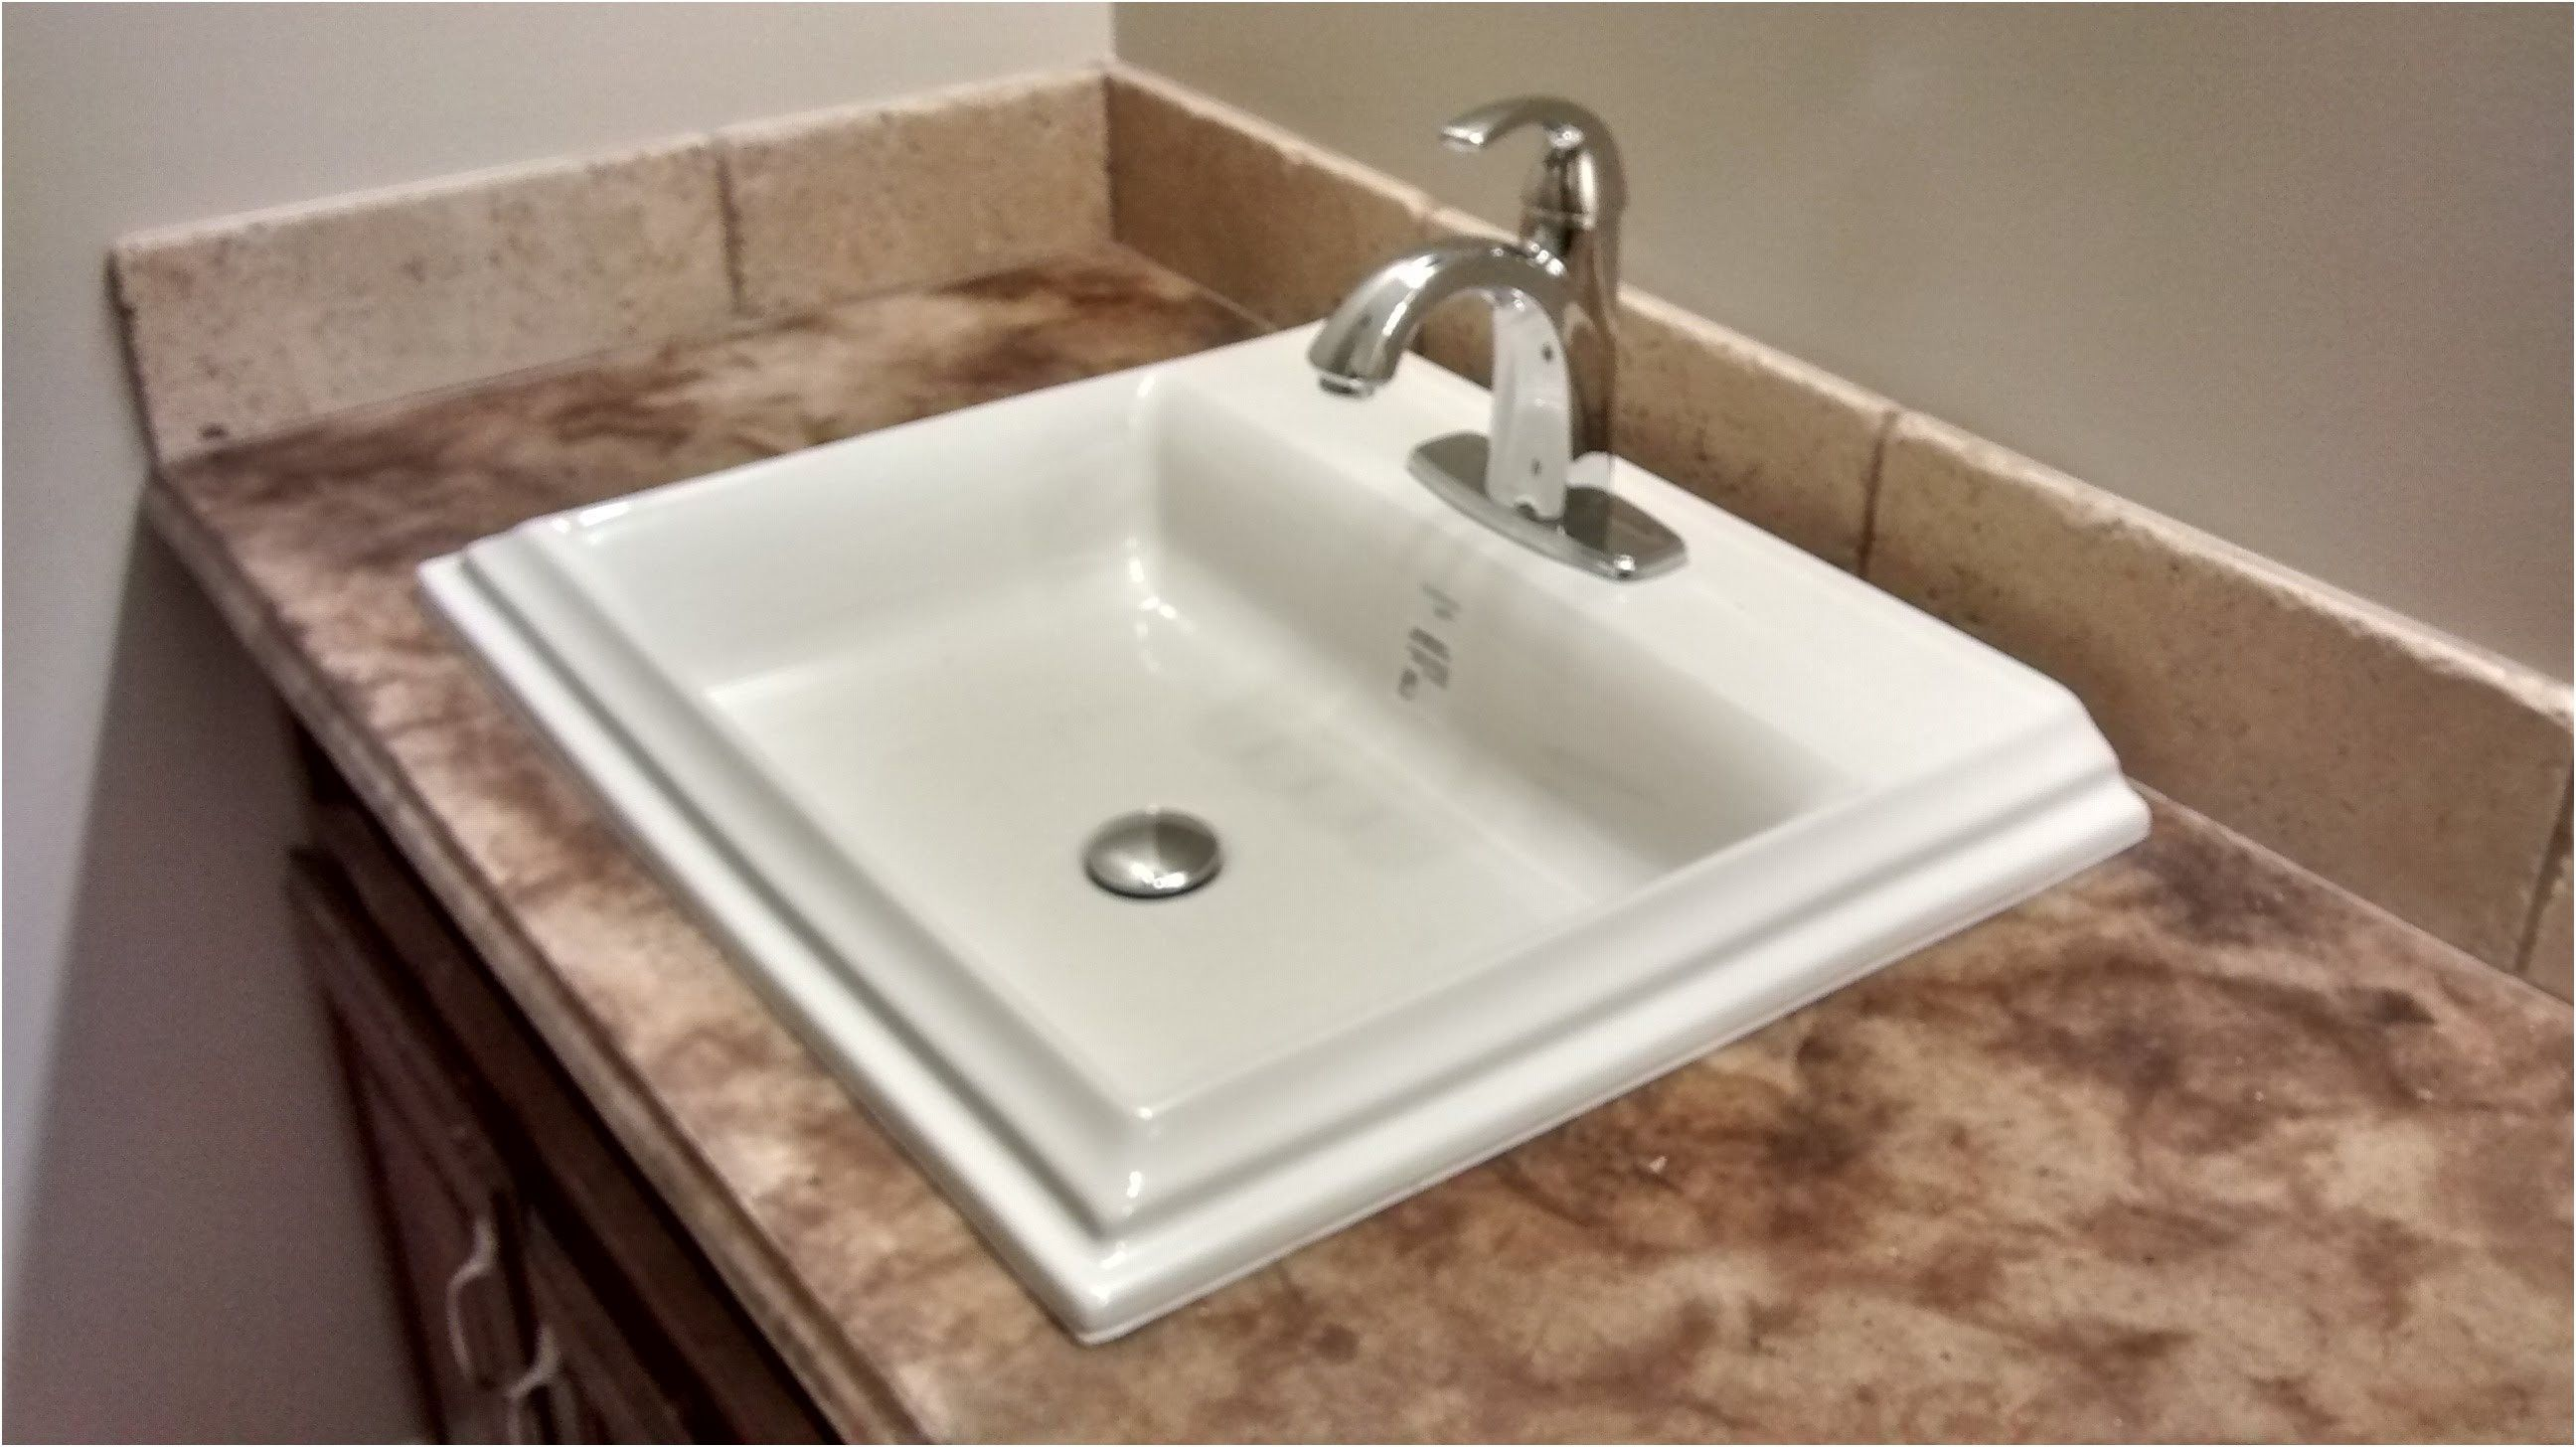 How To Install An Overmount Bathroom Sink Youtube From Overmount